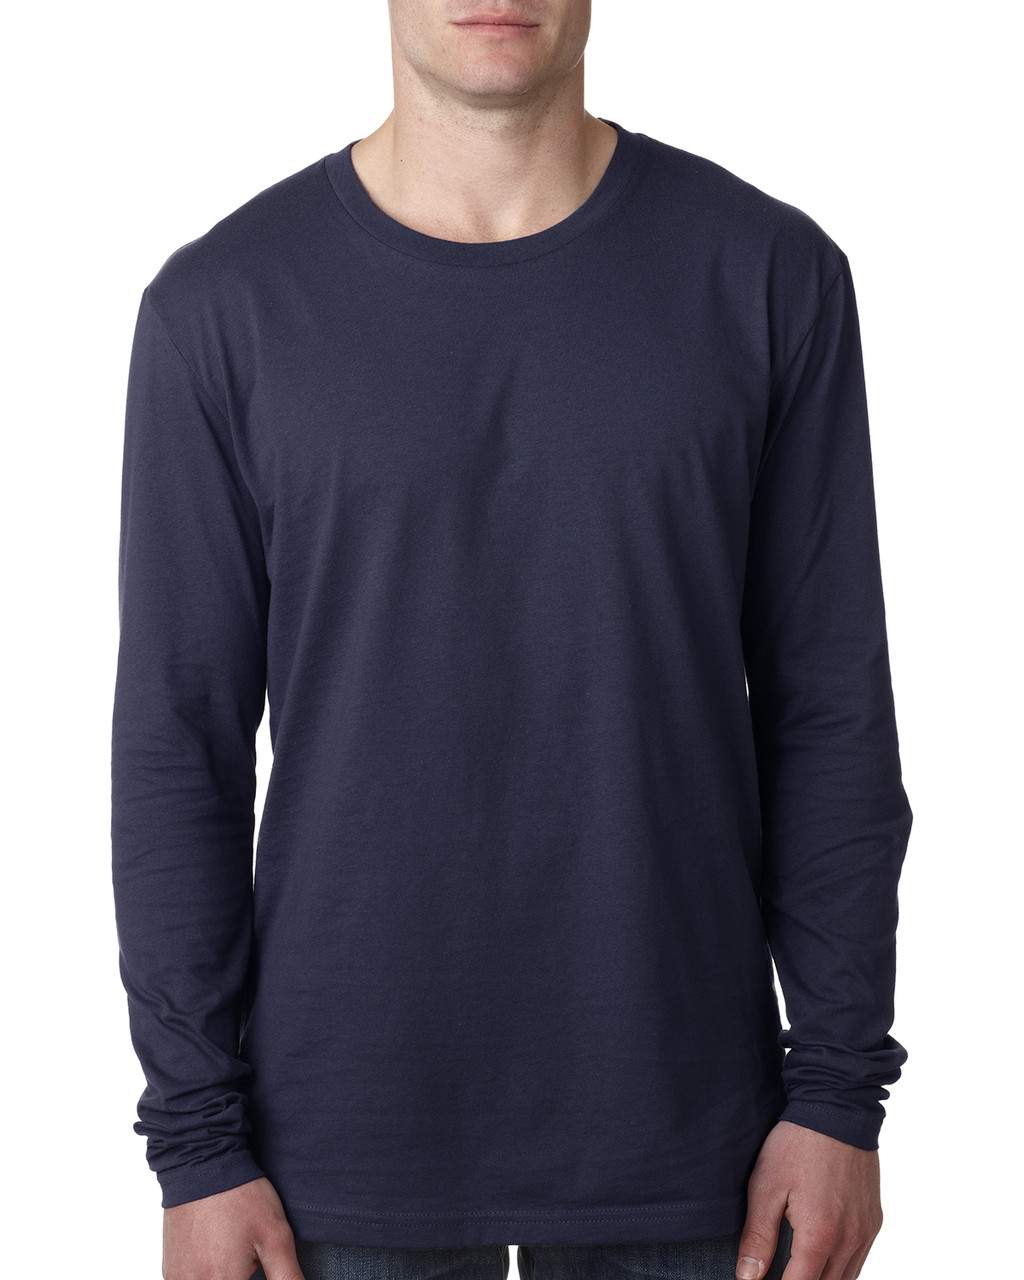 Midnight Navy - N3601 Next Level Men's Premium Fitted Long Sleeve Crew Tee | Blankclothing.ca